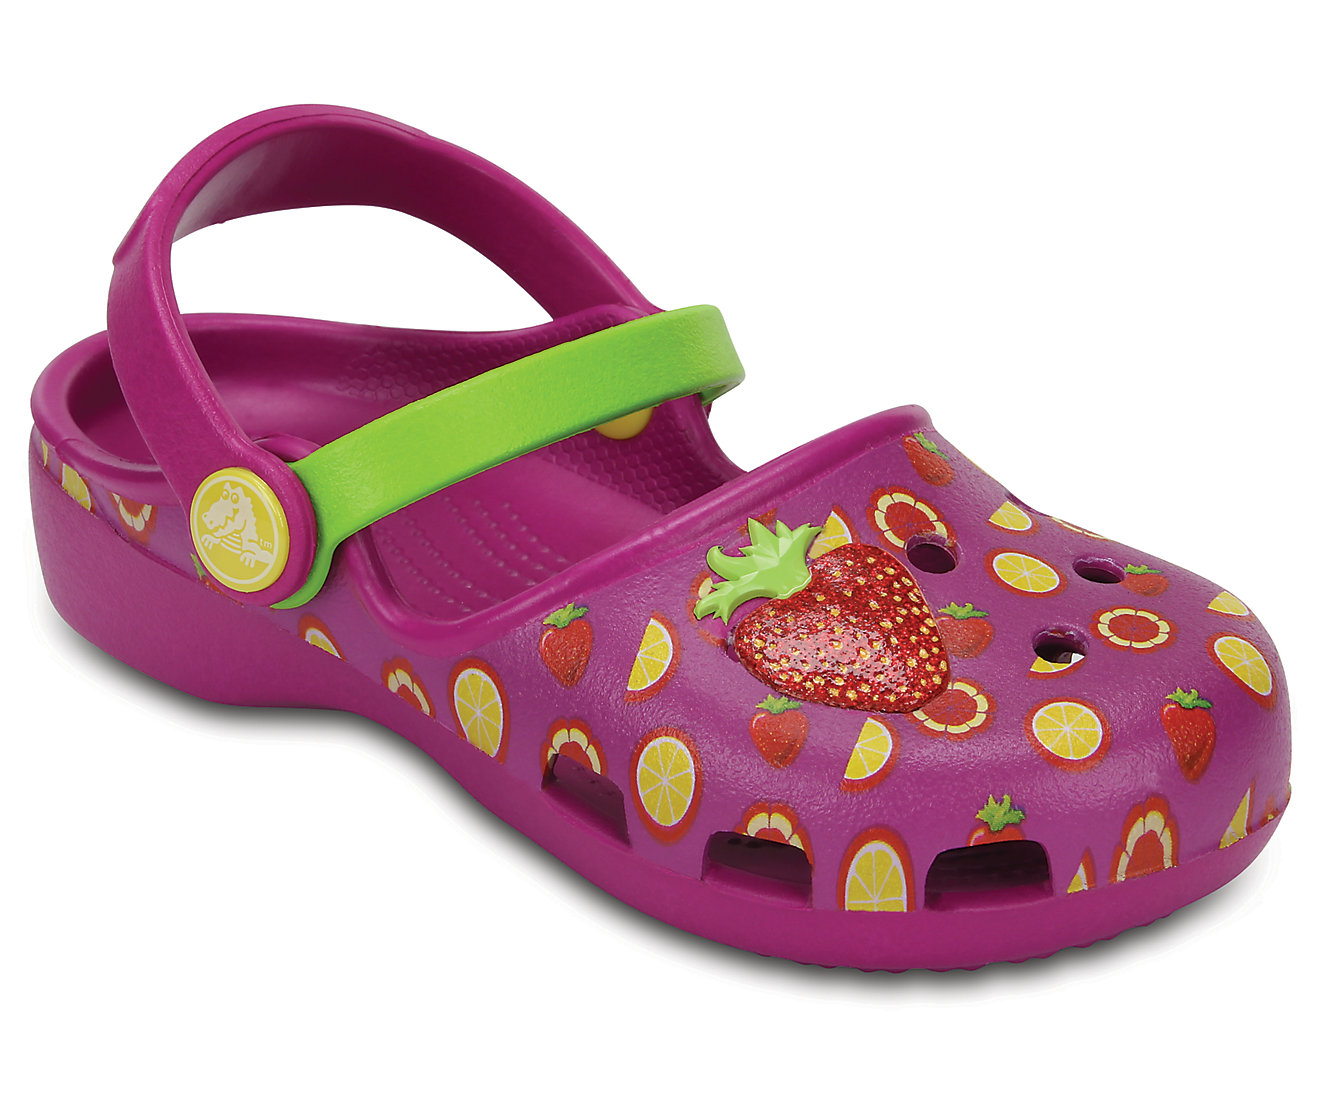 Kids' Crocs Karin Novelty Clogs